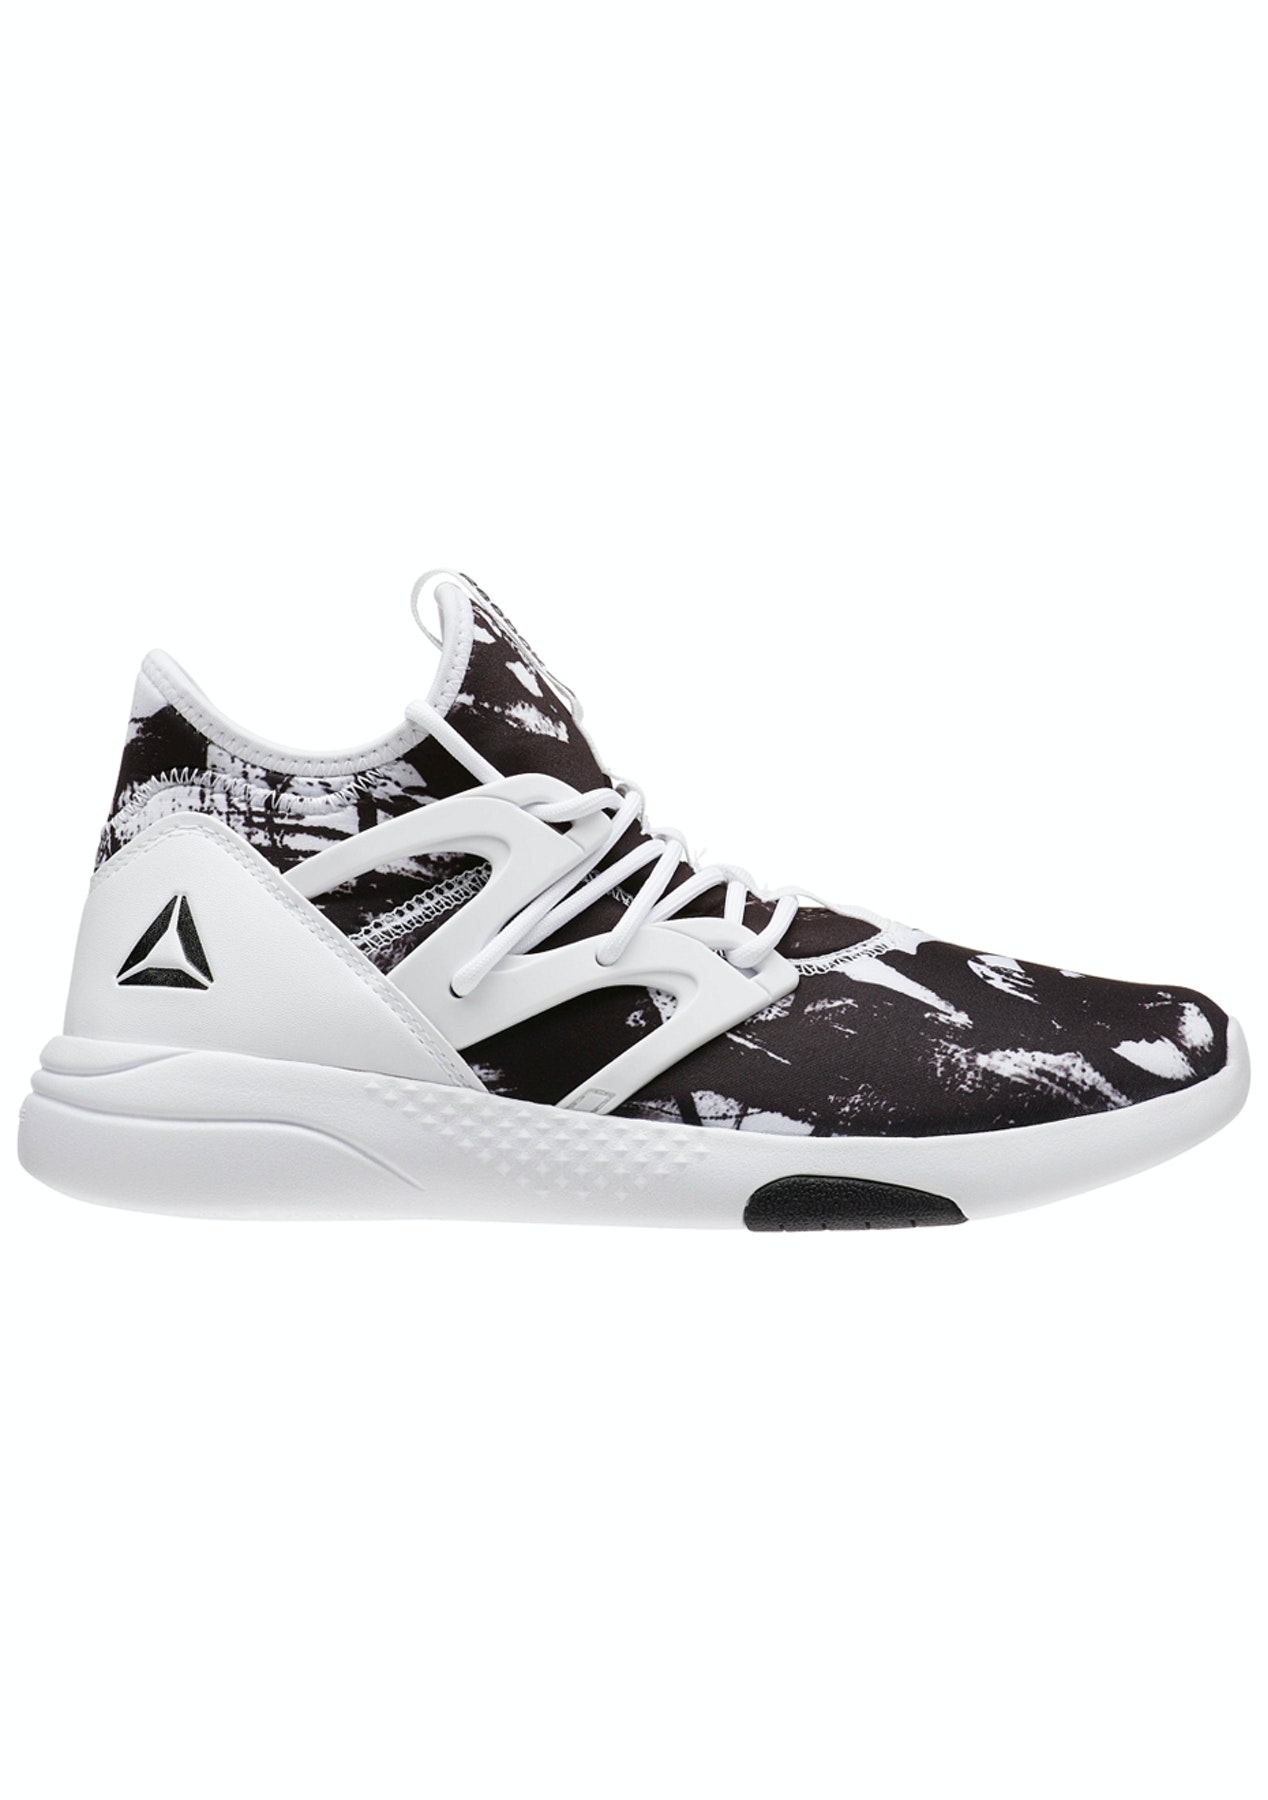 921b2fff1c7 Reebok Womens - Hayasu Ltd White Black - Once a Year Reebok - Onceit